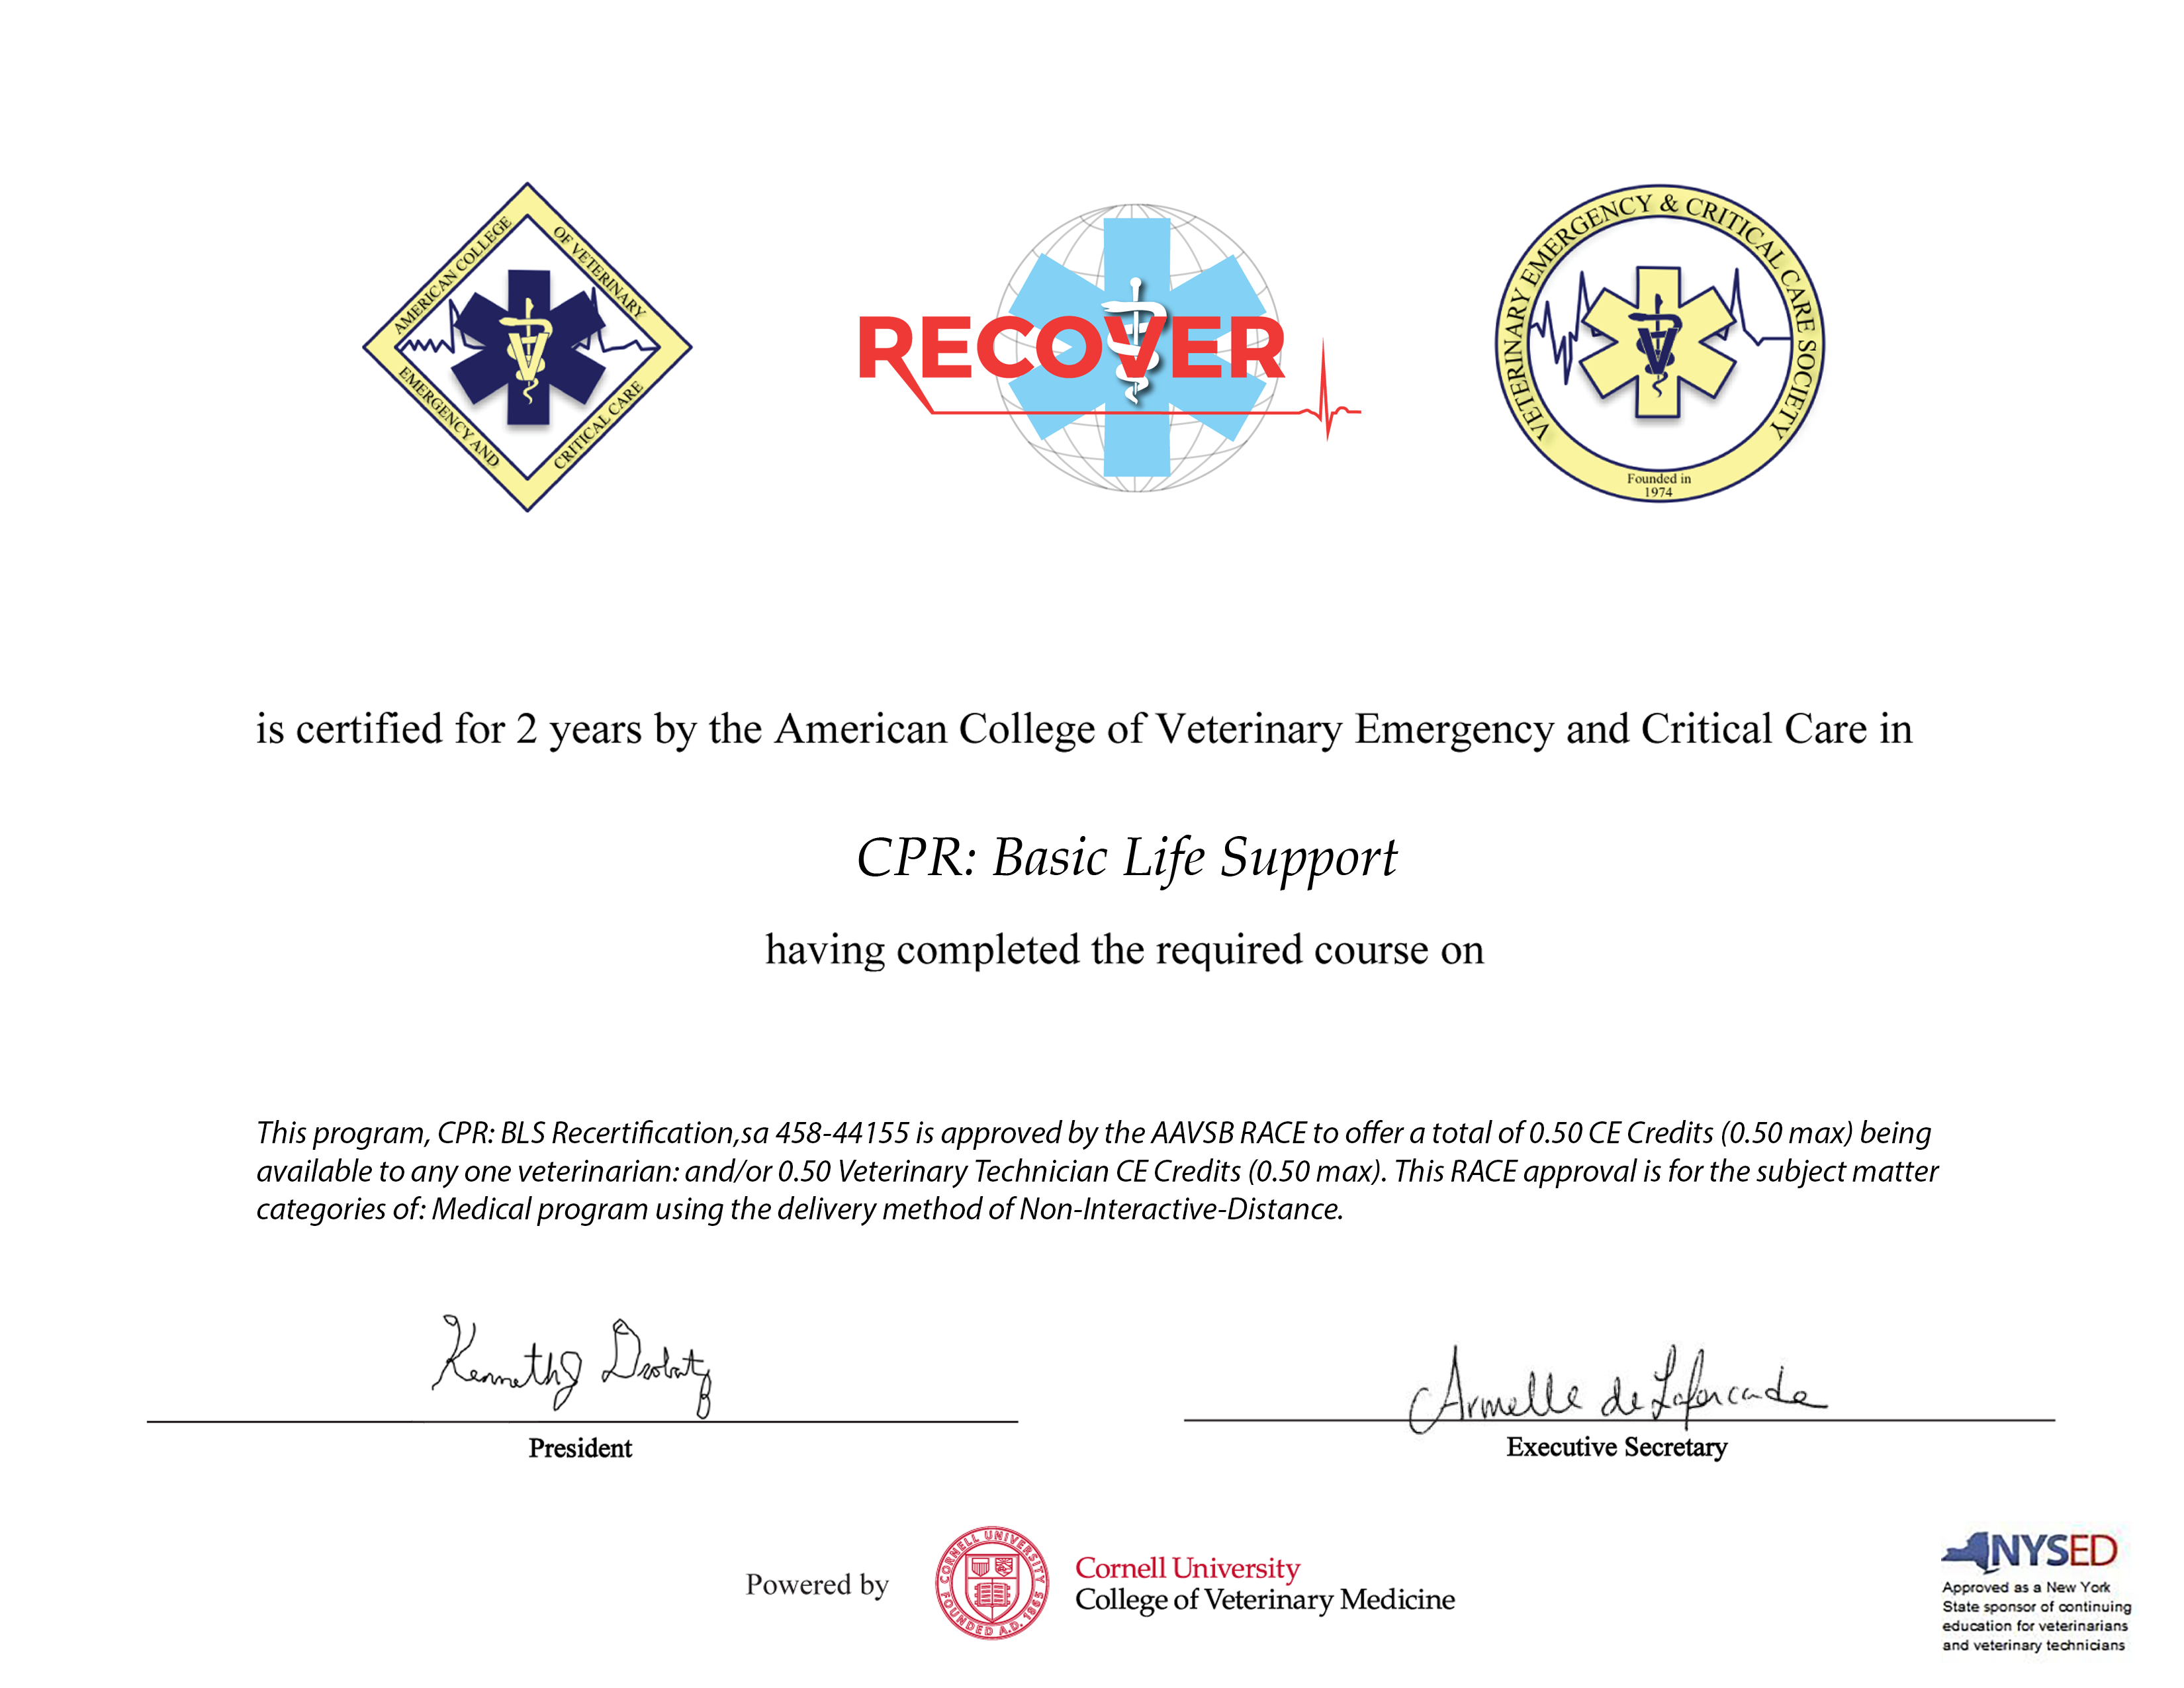 CPR: Basic Life Support Recertification